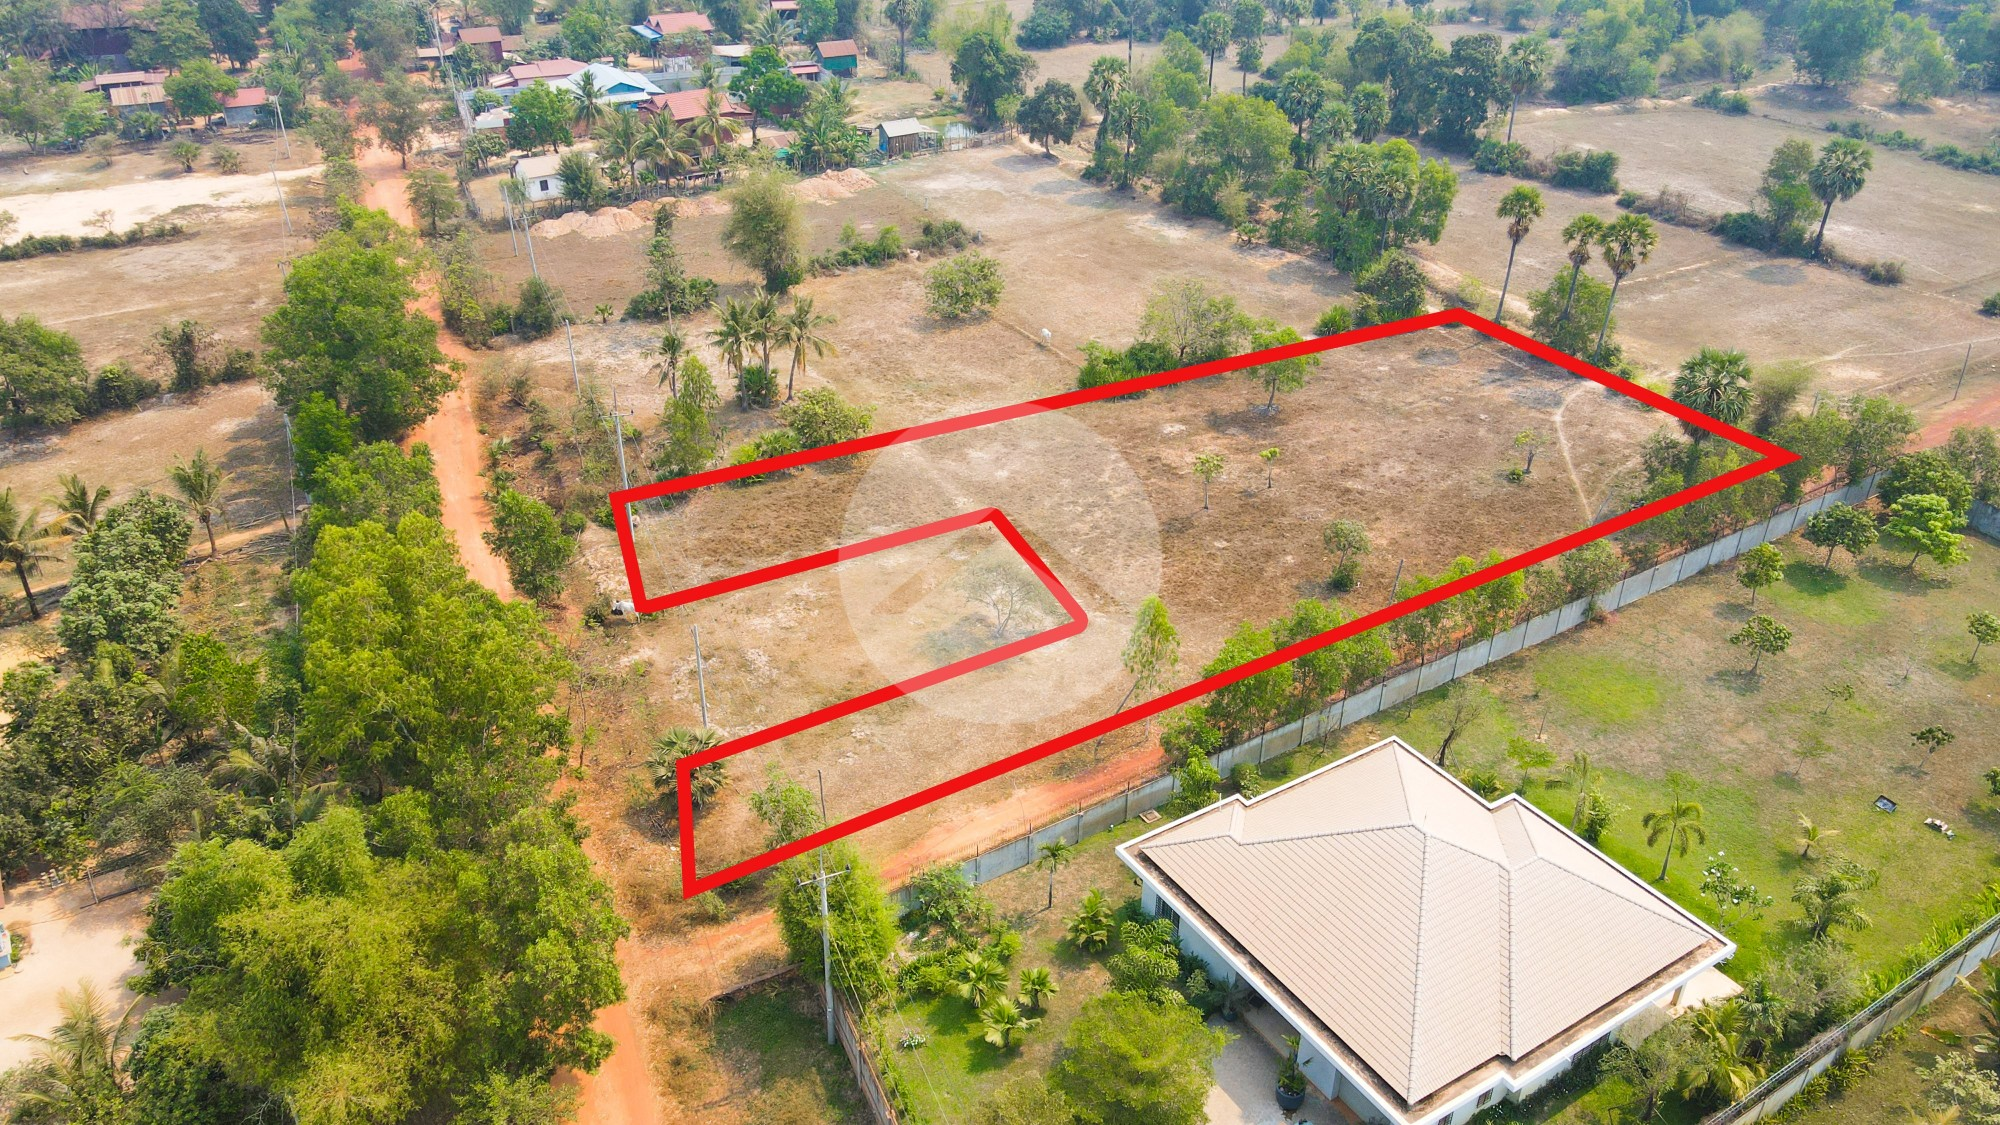 2847 Sqm Residential Land For Sale - Sambour, Siem Reap